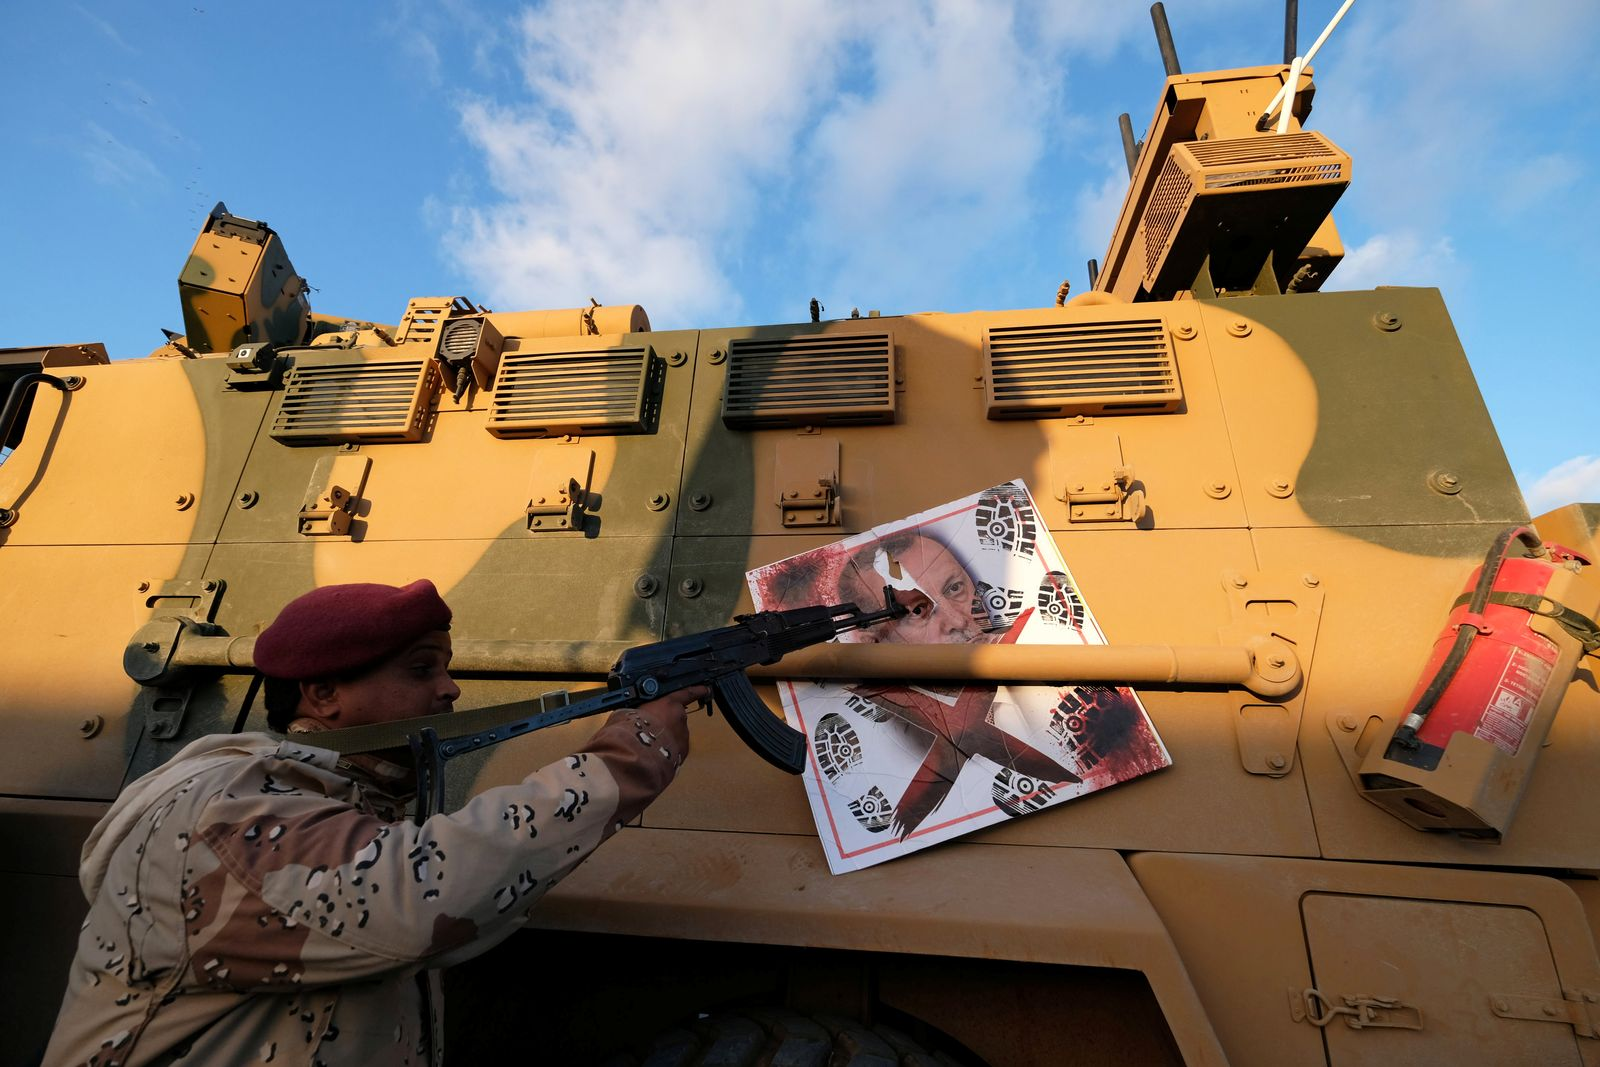 A member of Libyan National Army (LNA) commanded by Khalifa Haftar, points his gun to the image of Turkish President Tayyip Erdogan hanged on a Turkish military armored vehicle, which LNA said they confiscated during Tripoli clashes, in Benghazi